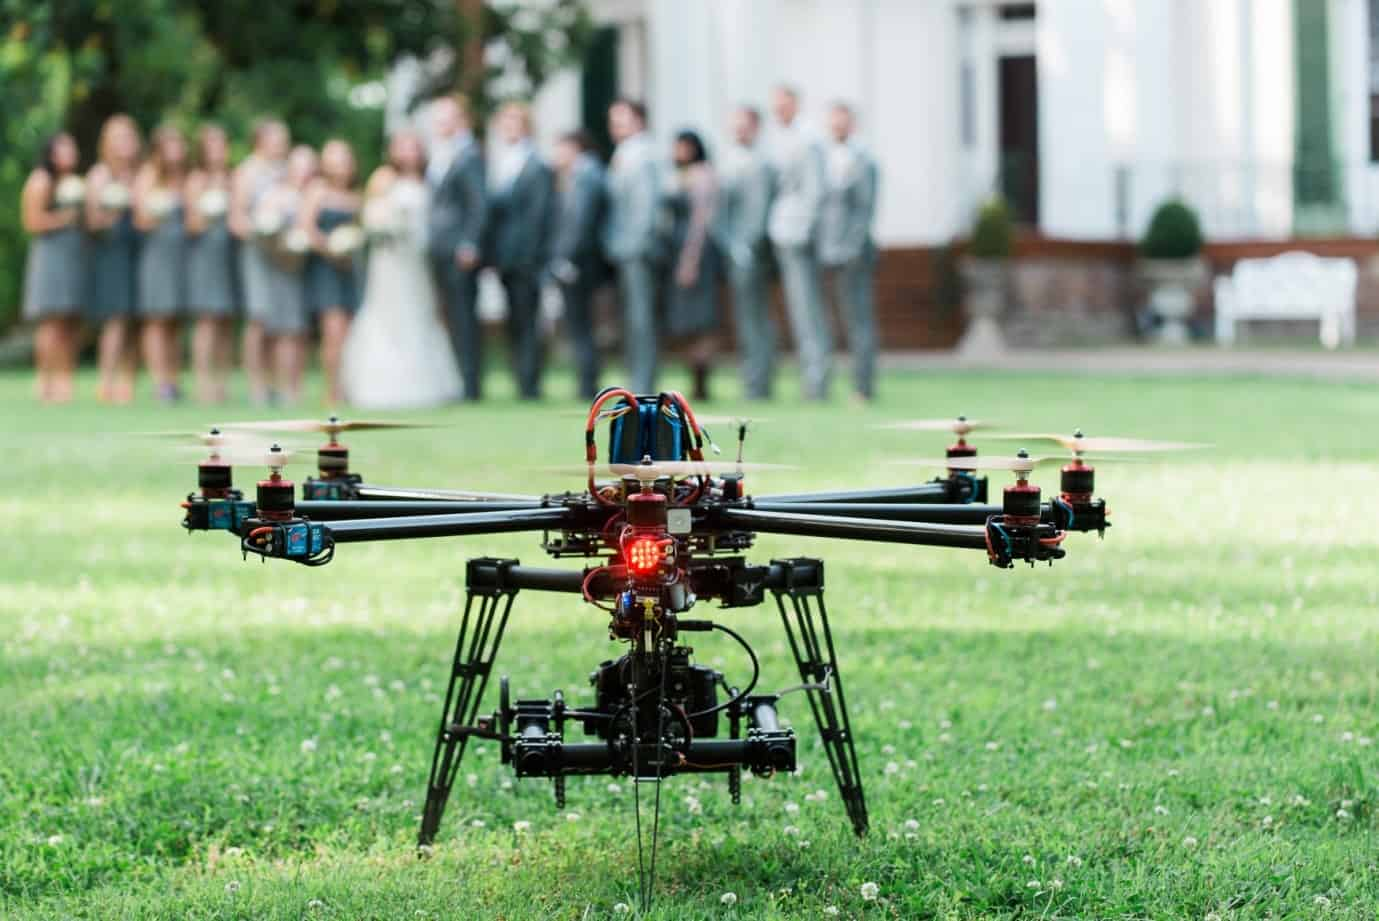 with this ring drone wedding party in background